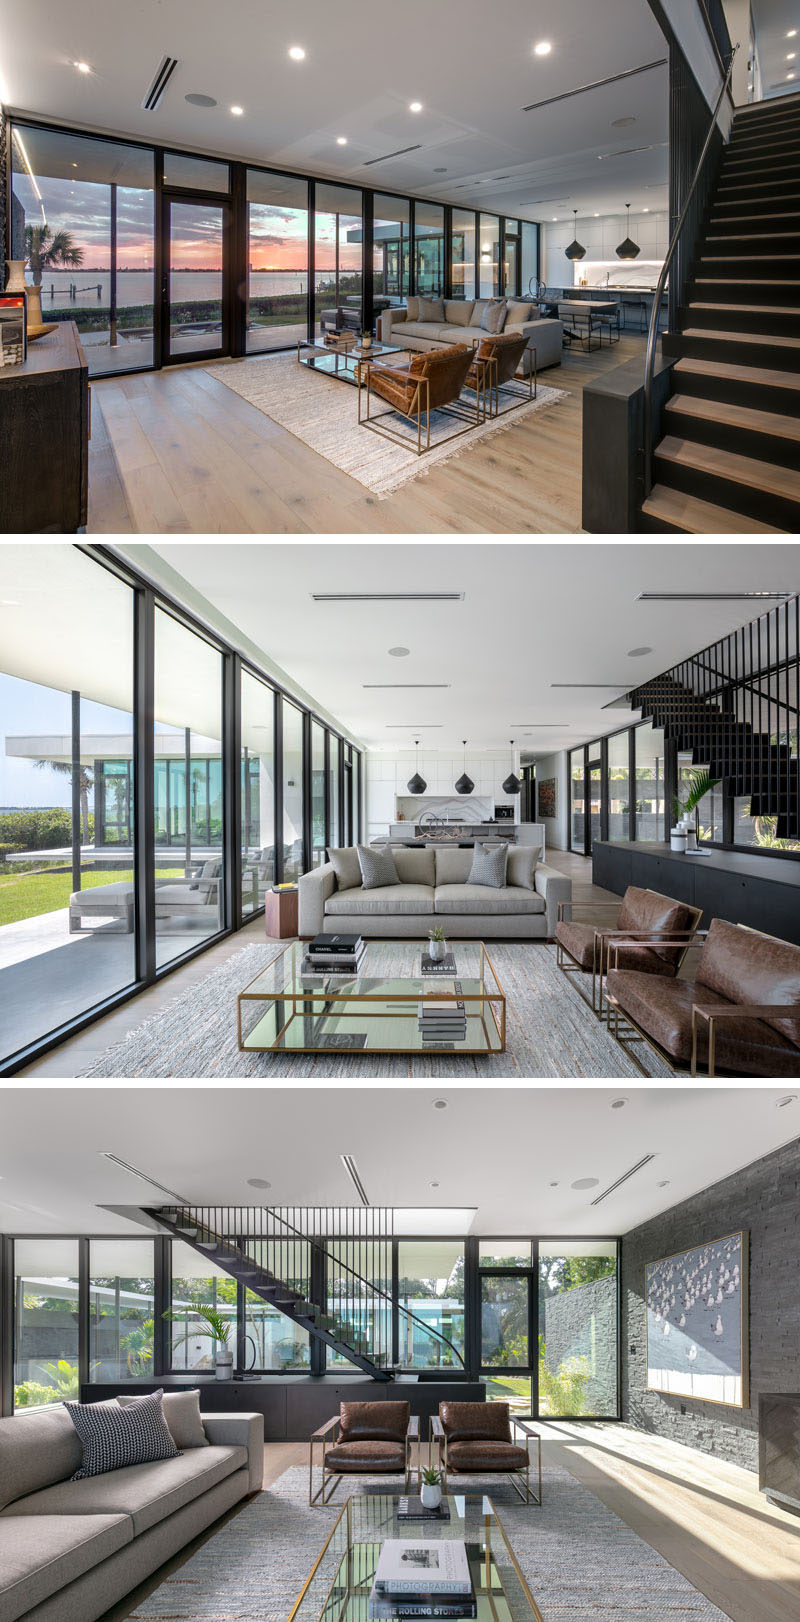 Inside this modern house, the great room is home to the living room, dining room, and kitchen. #GreatRoom #OpenPlan #InteriorDesign